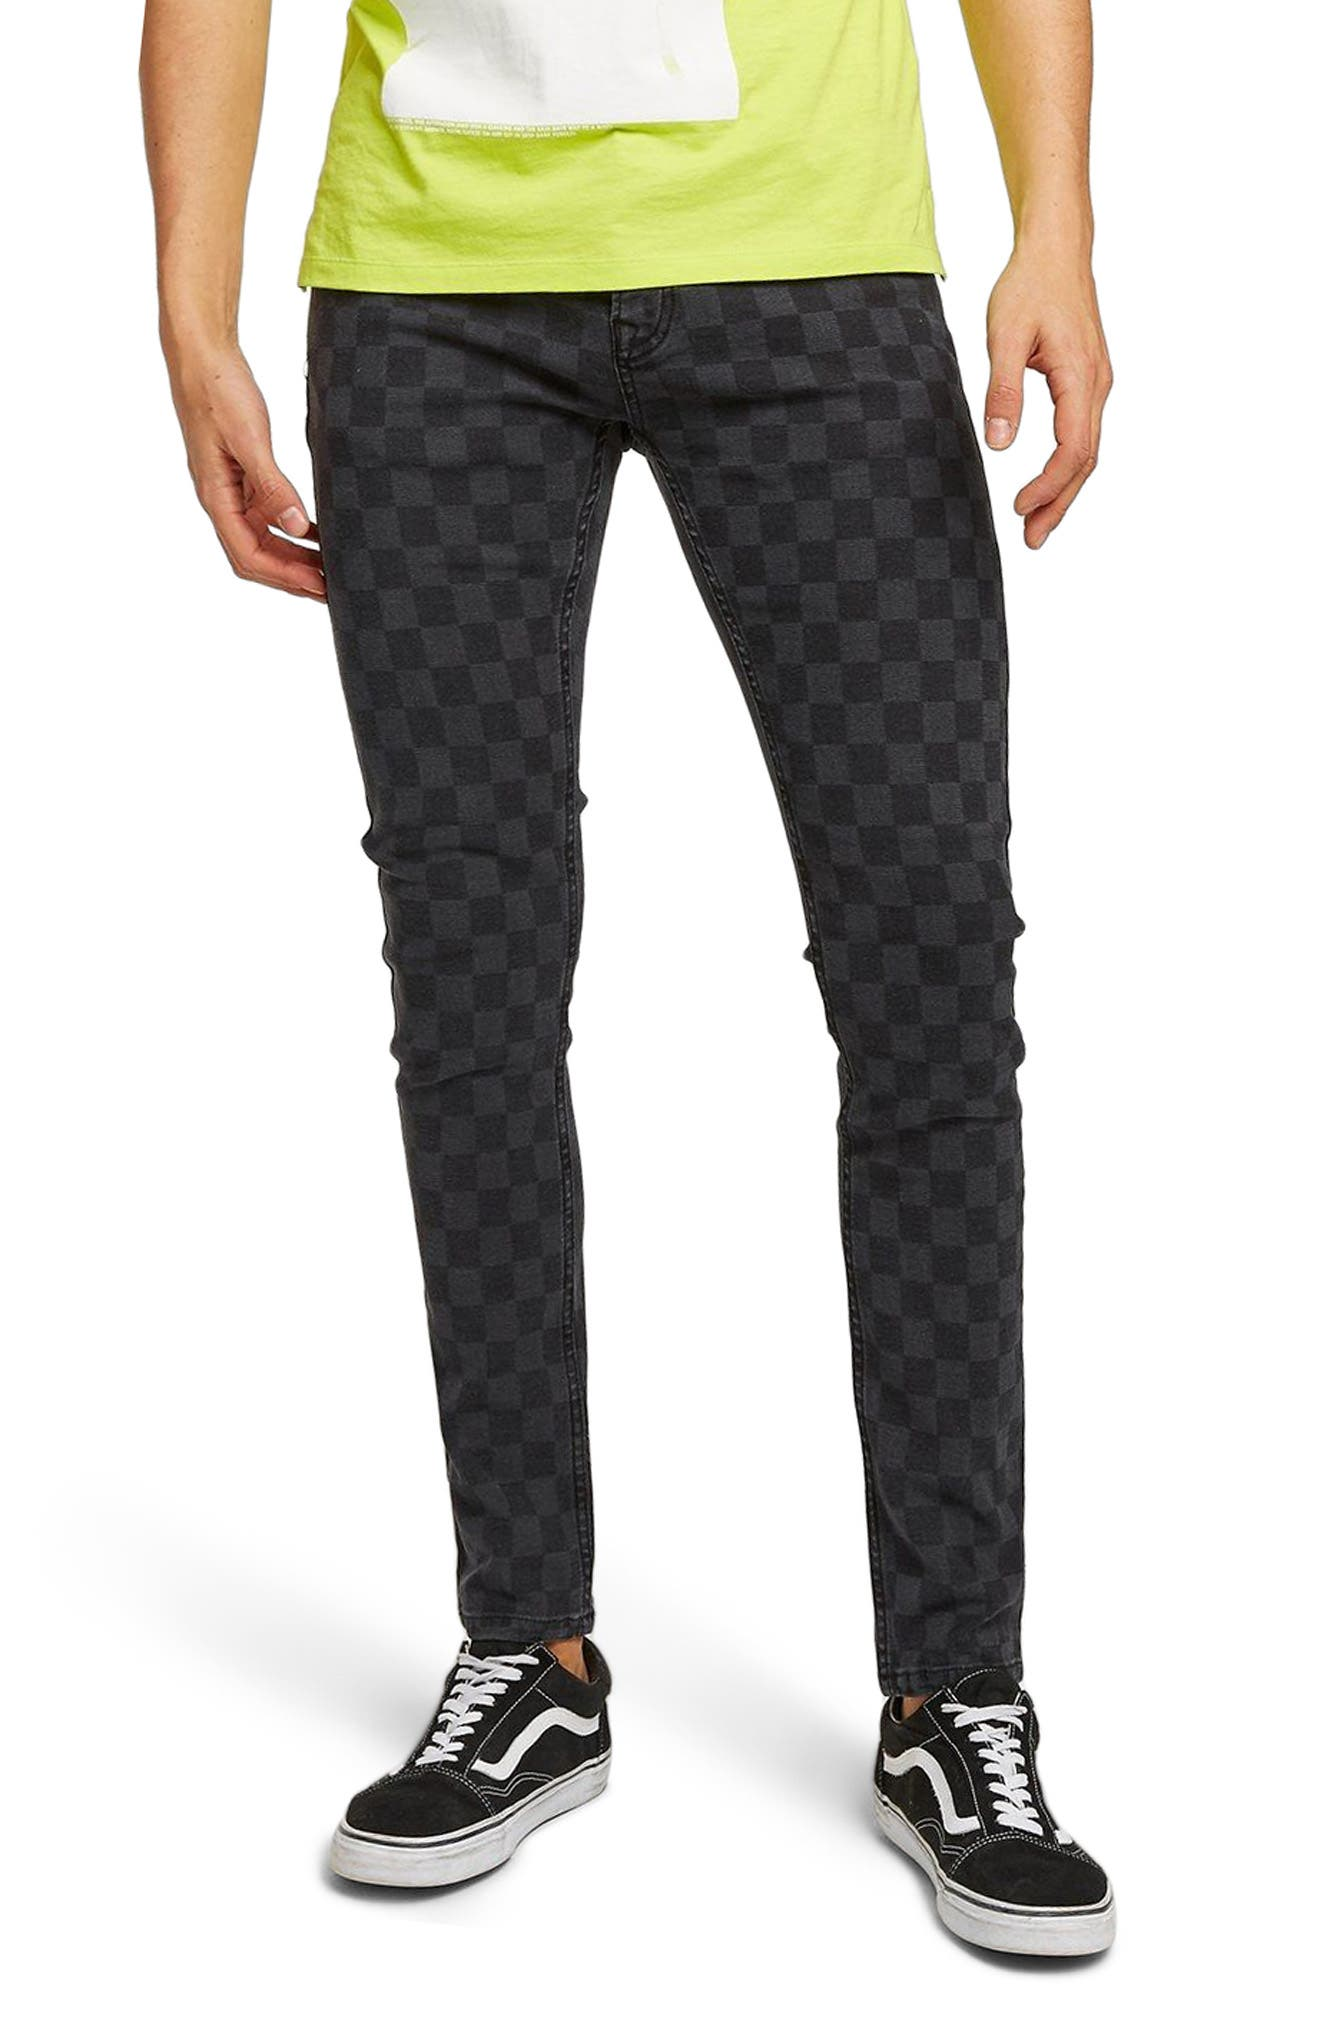 Check Stretch Skinny Fit Pants,                             Main thumbnail 1, color,                             BLACK MULTI